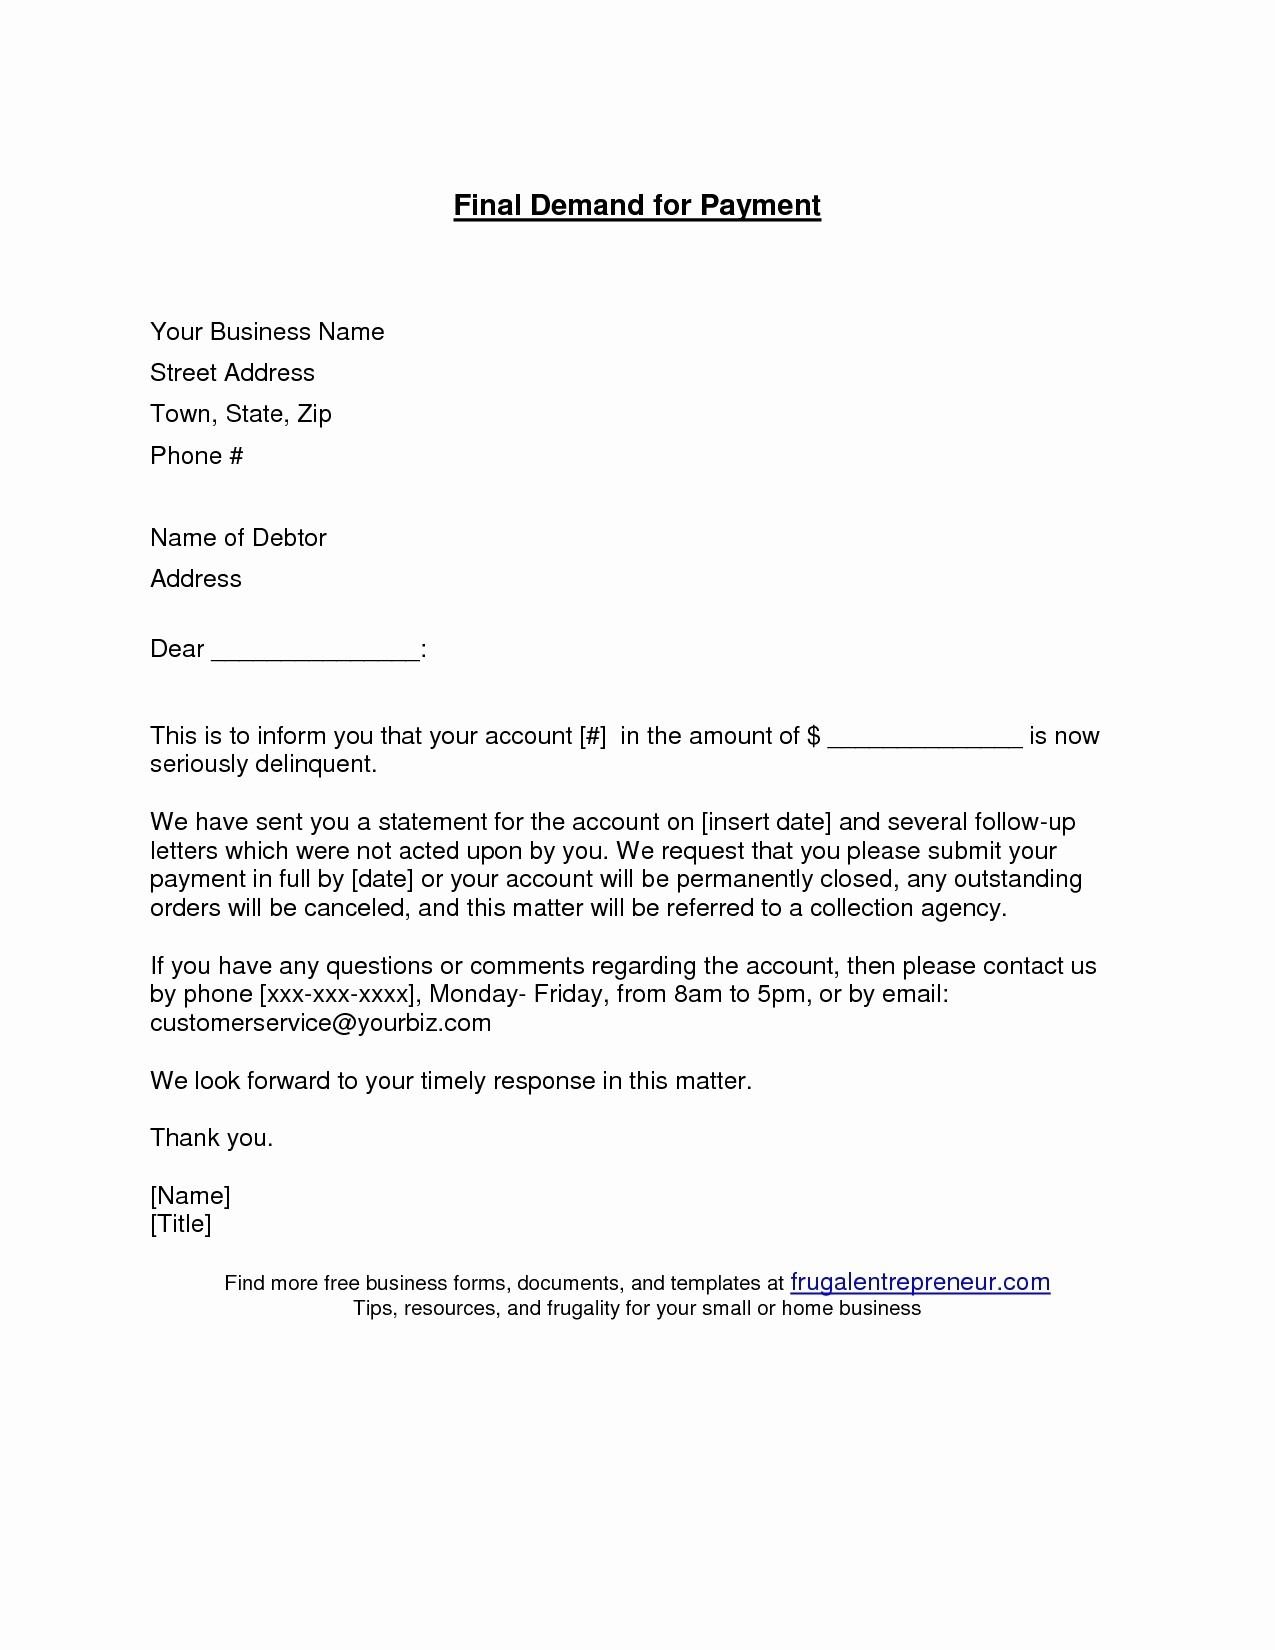 Final Demand for Payment Letter Template - Letter format for Payment Follow Up Inspirationa Sample Payment